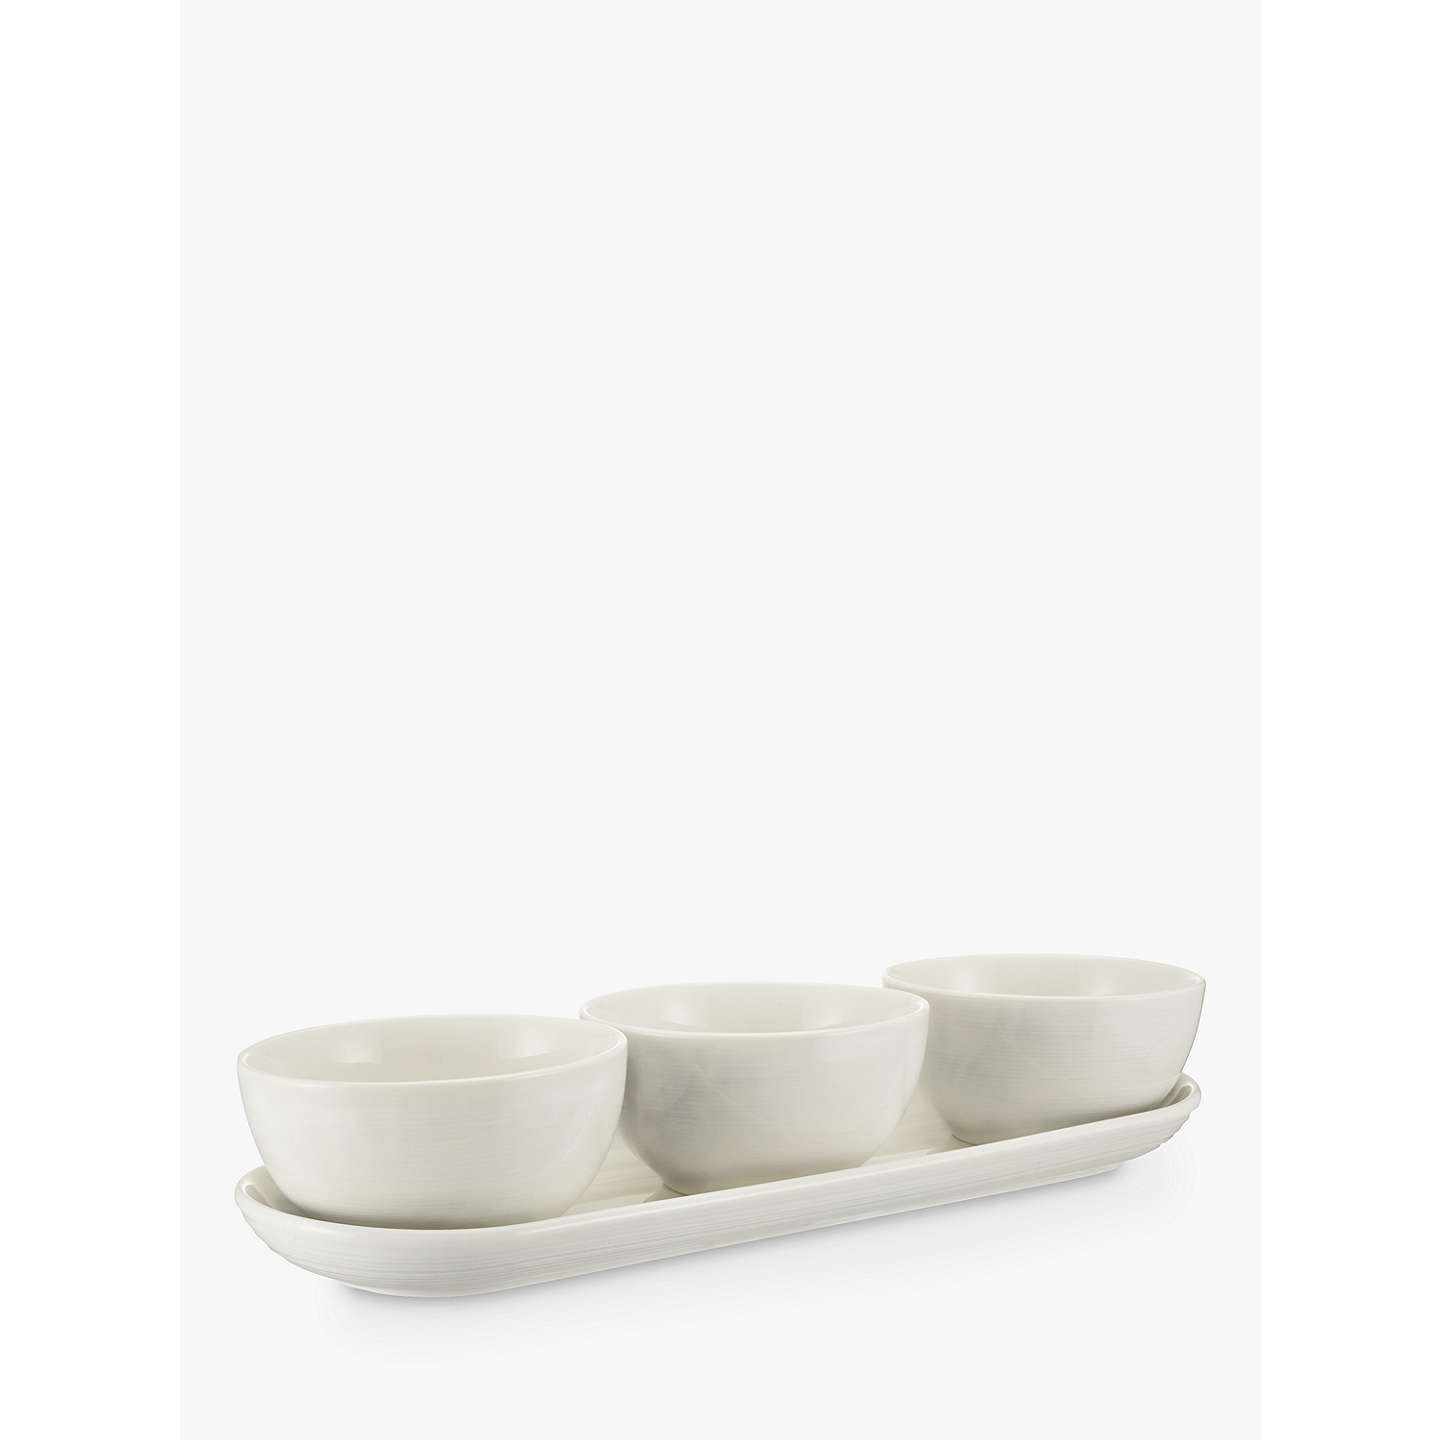 Croft collection luna 3 dip bowls on tray at john lewis buycroft collection luna 3 dip bowls on tray online at johnlewis reviewsmspy